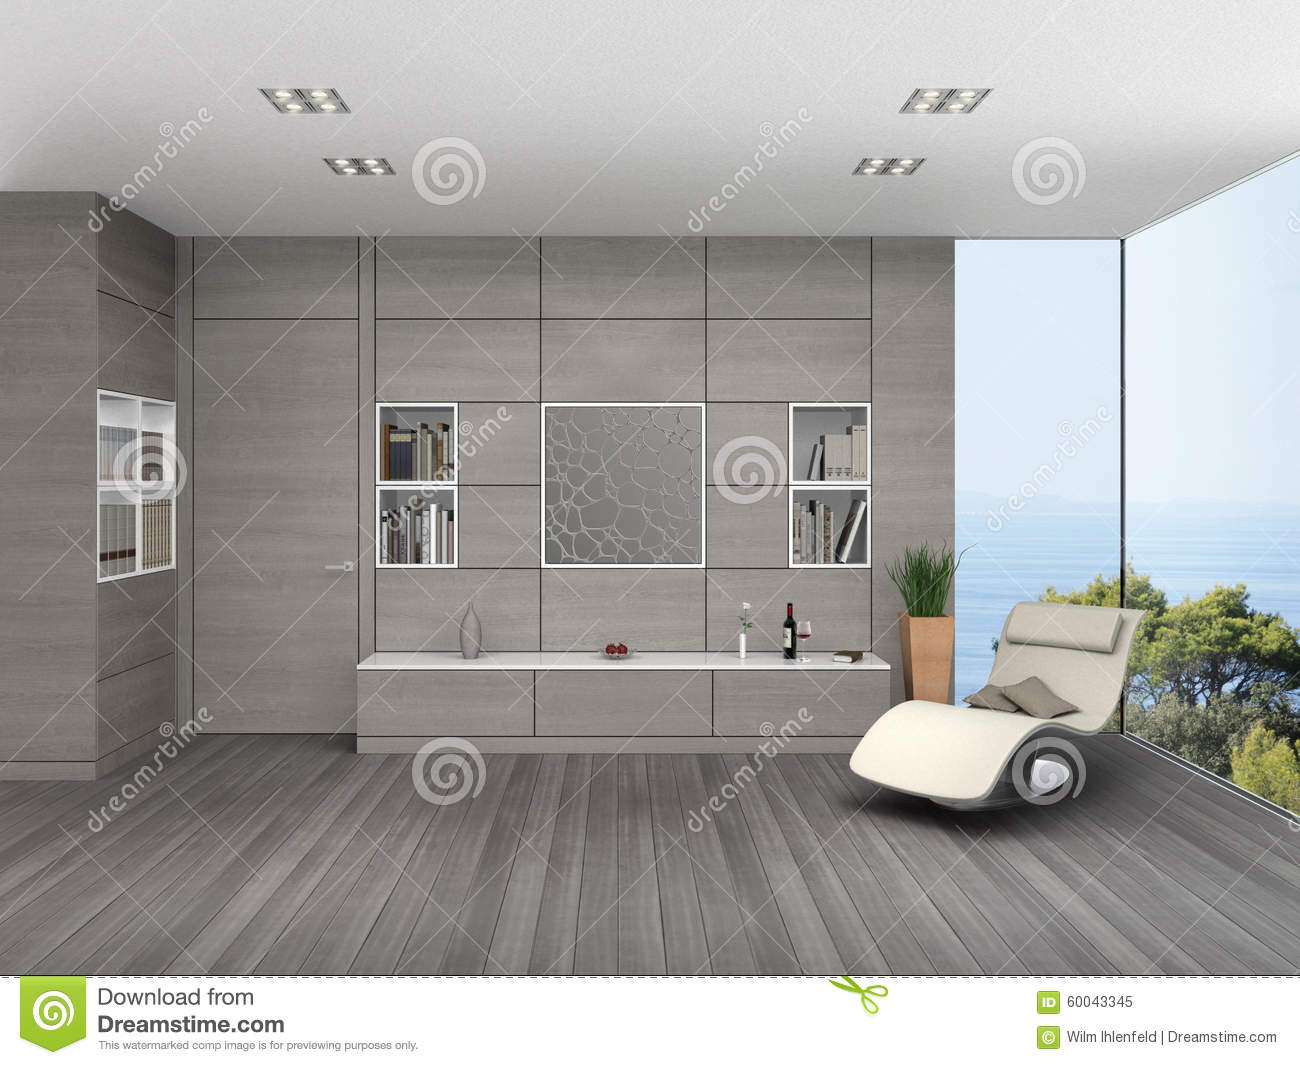 Modern Living Room With Wooden Wall Cladding Stock Illustration Image 6004